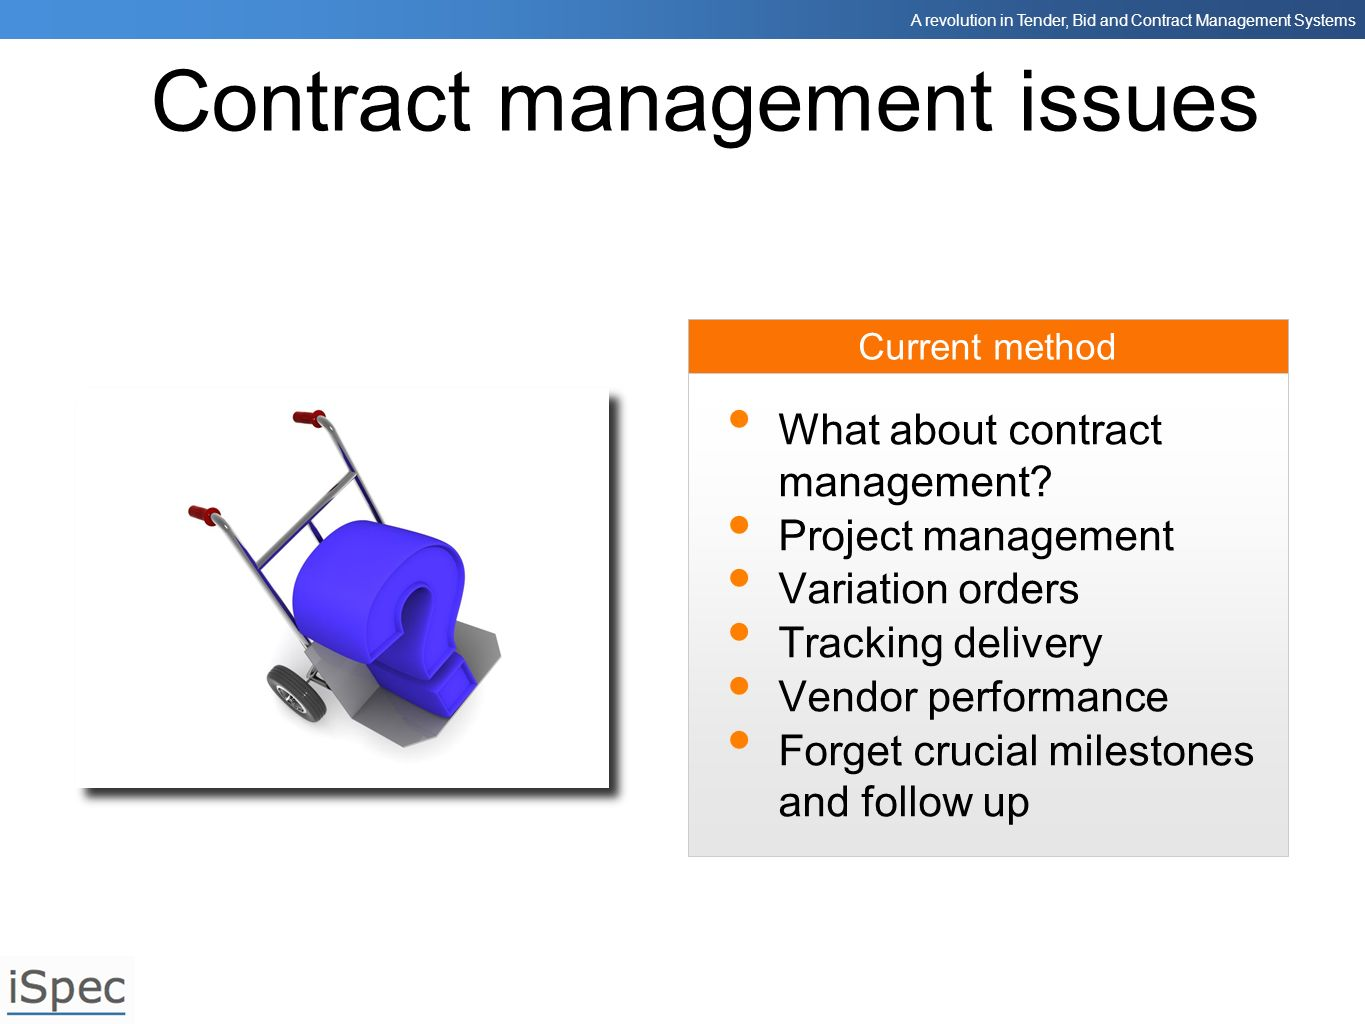 Contract management issues